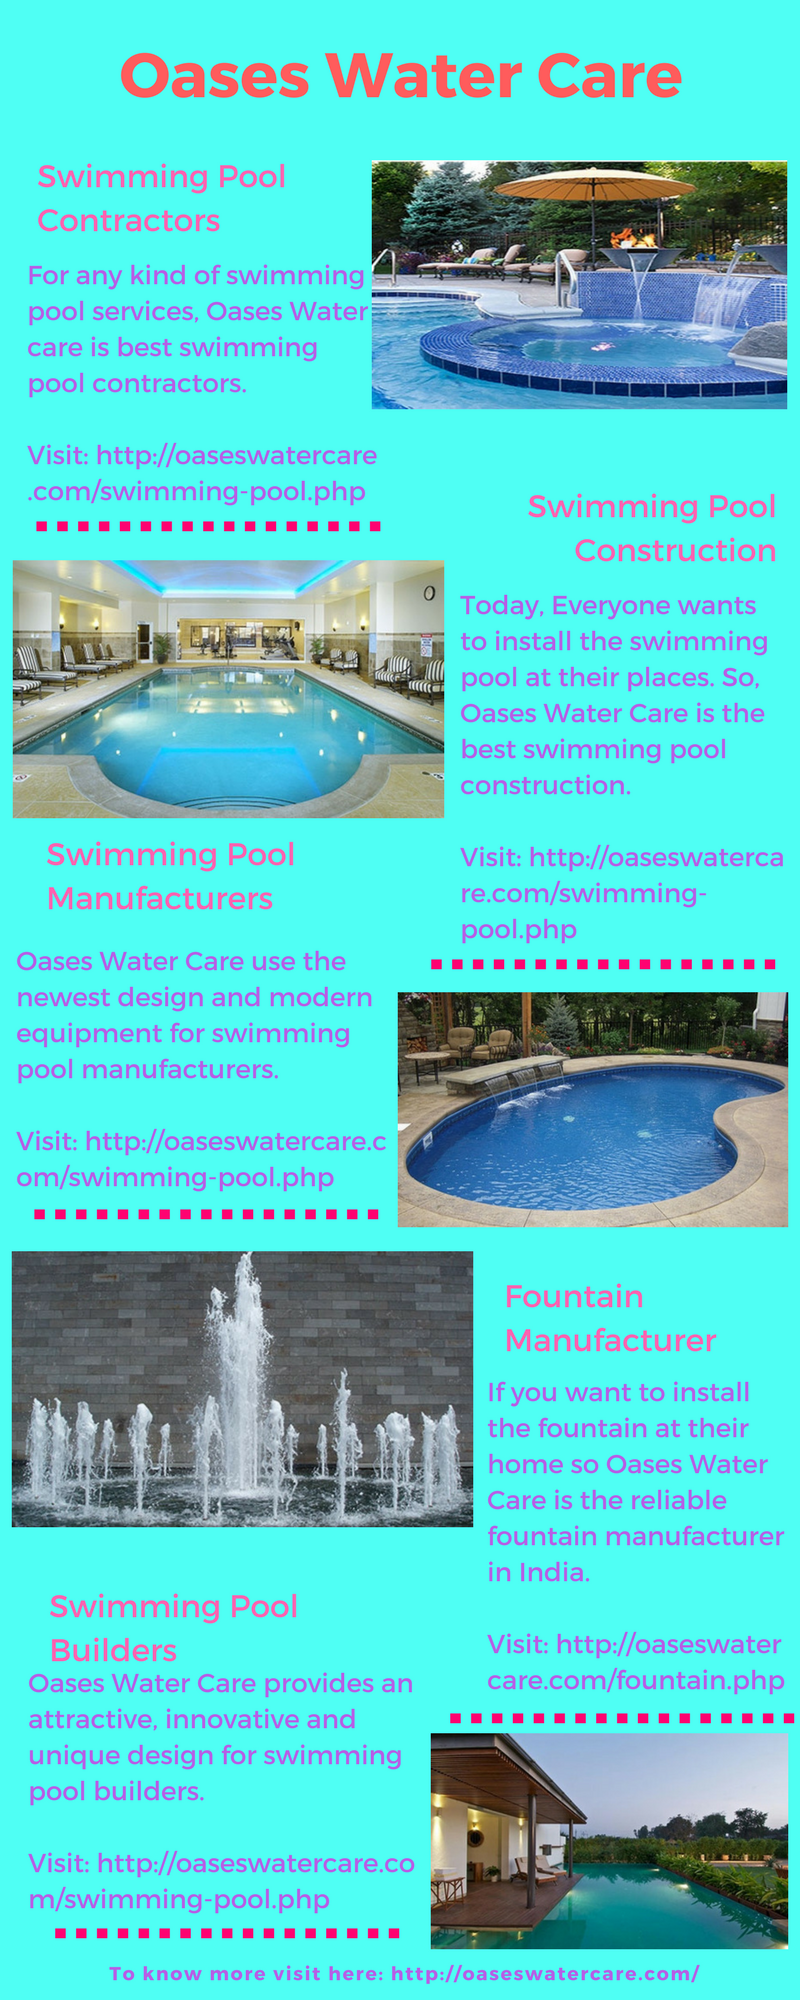 Oases Water Care Deal With Swimming Pool Contractors, Swimming Pool  Construction, Fountain Manufacturer, Swimming Pool Manufacturers Etc.